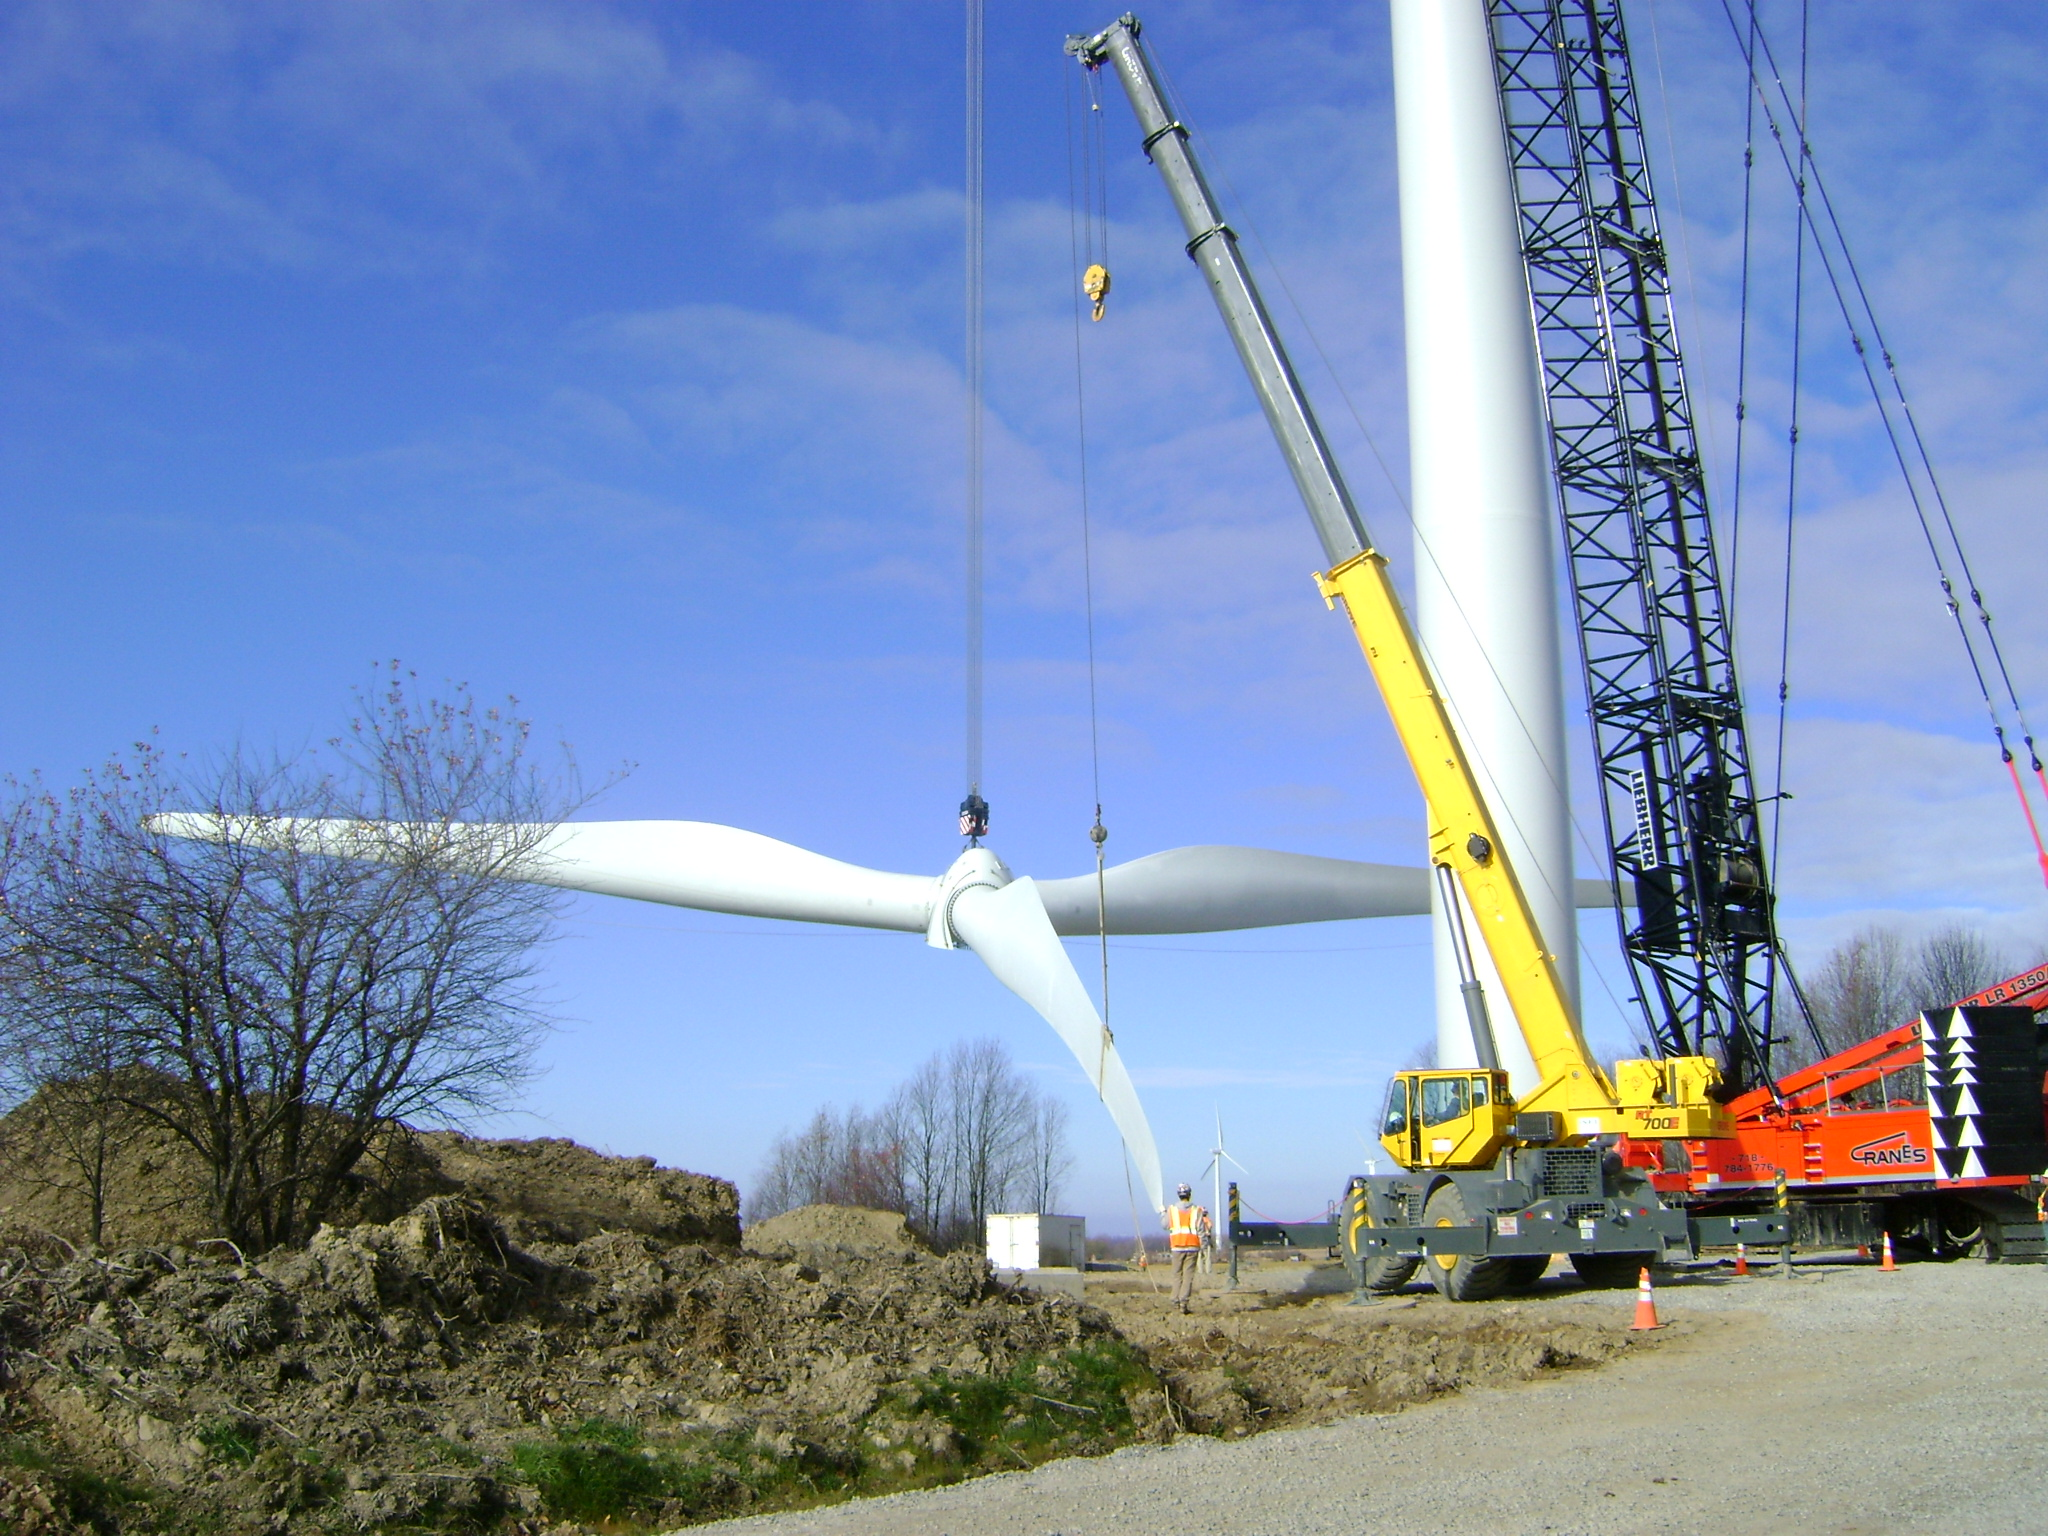 Anatomy of a wind turbine: Analysing the key components involved